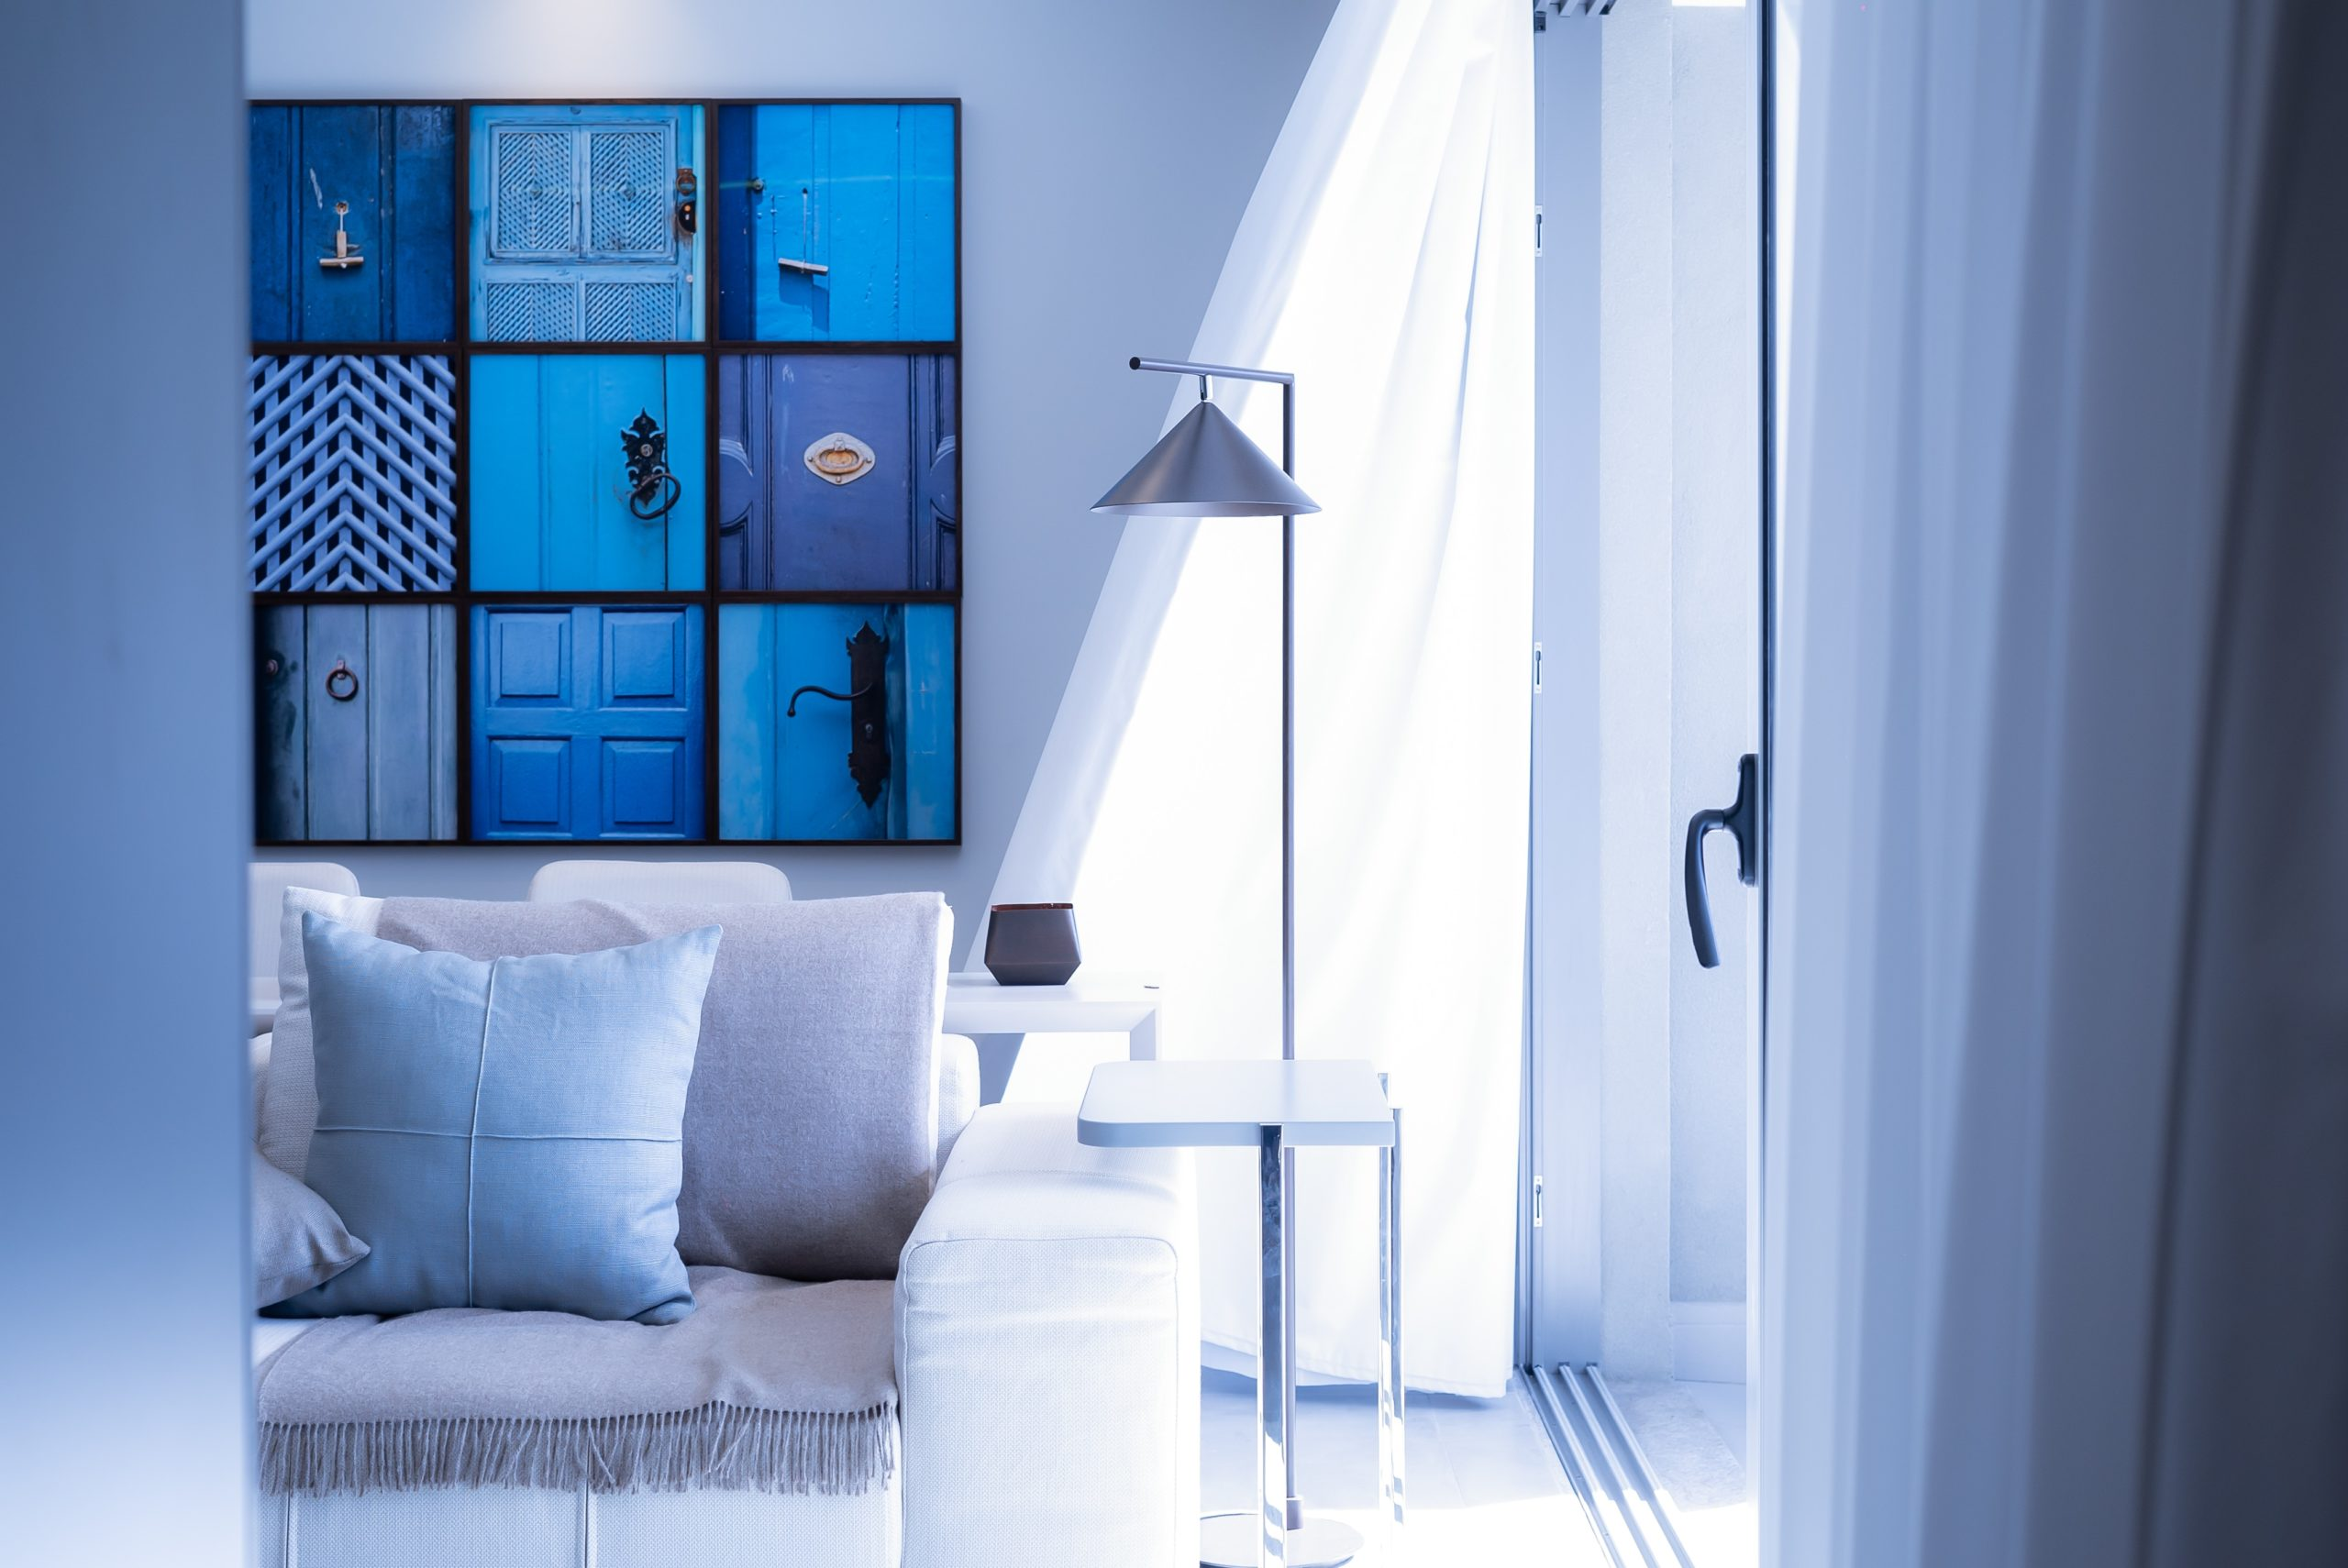 How to Upgrade Your Home Security System